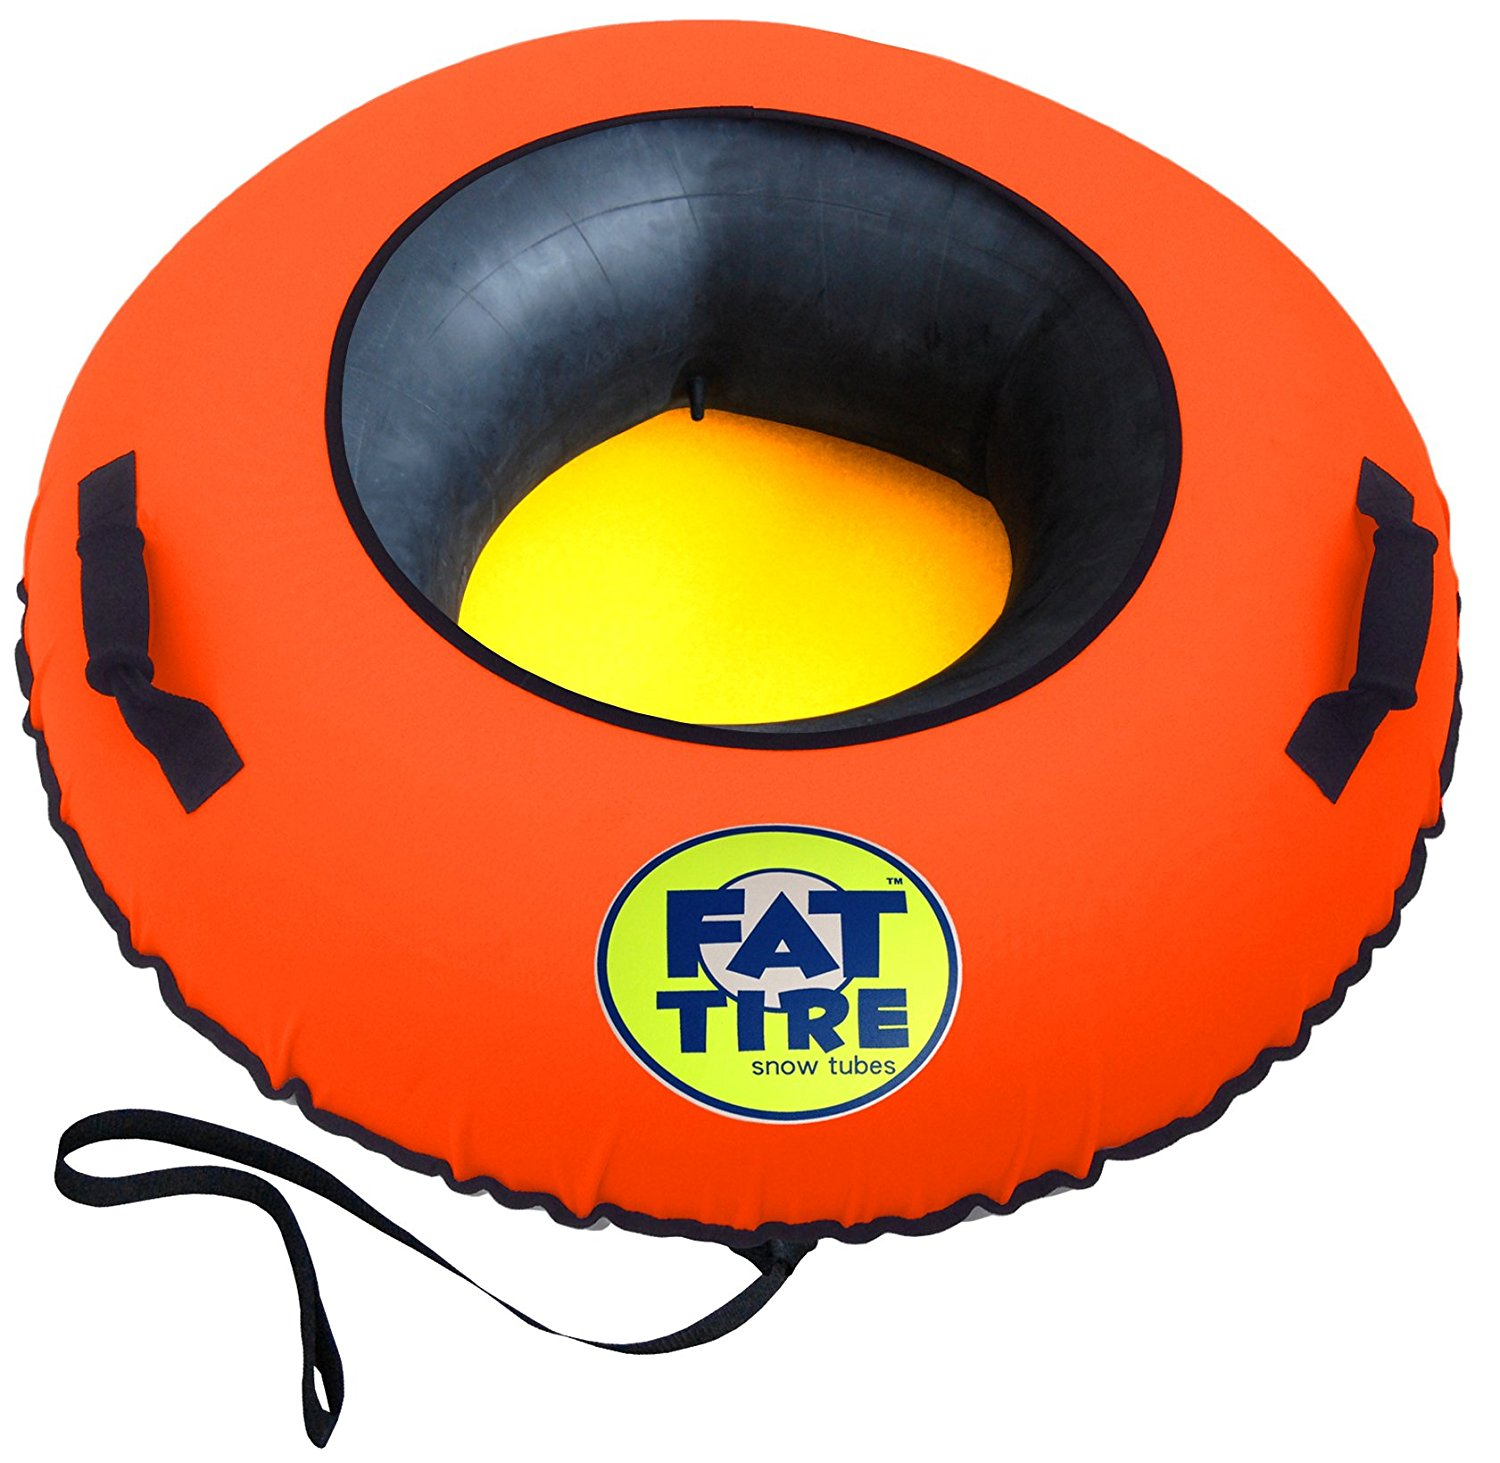 Fat Tire Inflatable Snow Tube